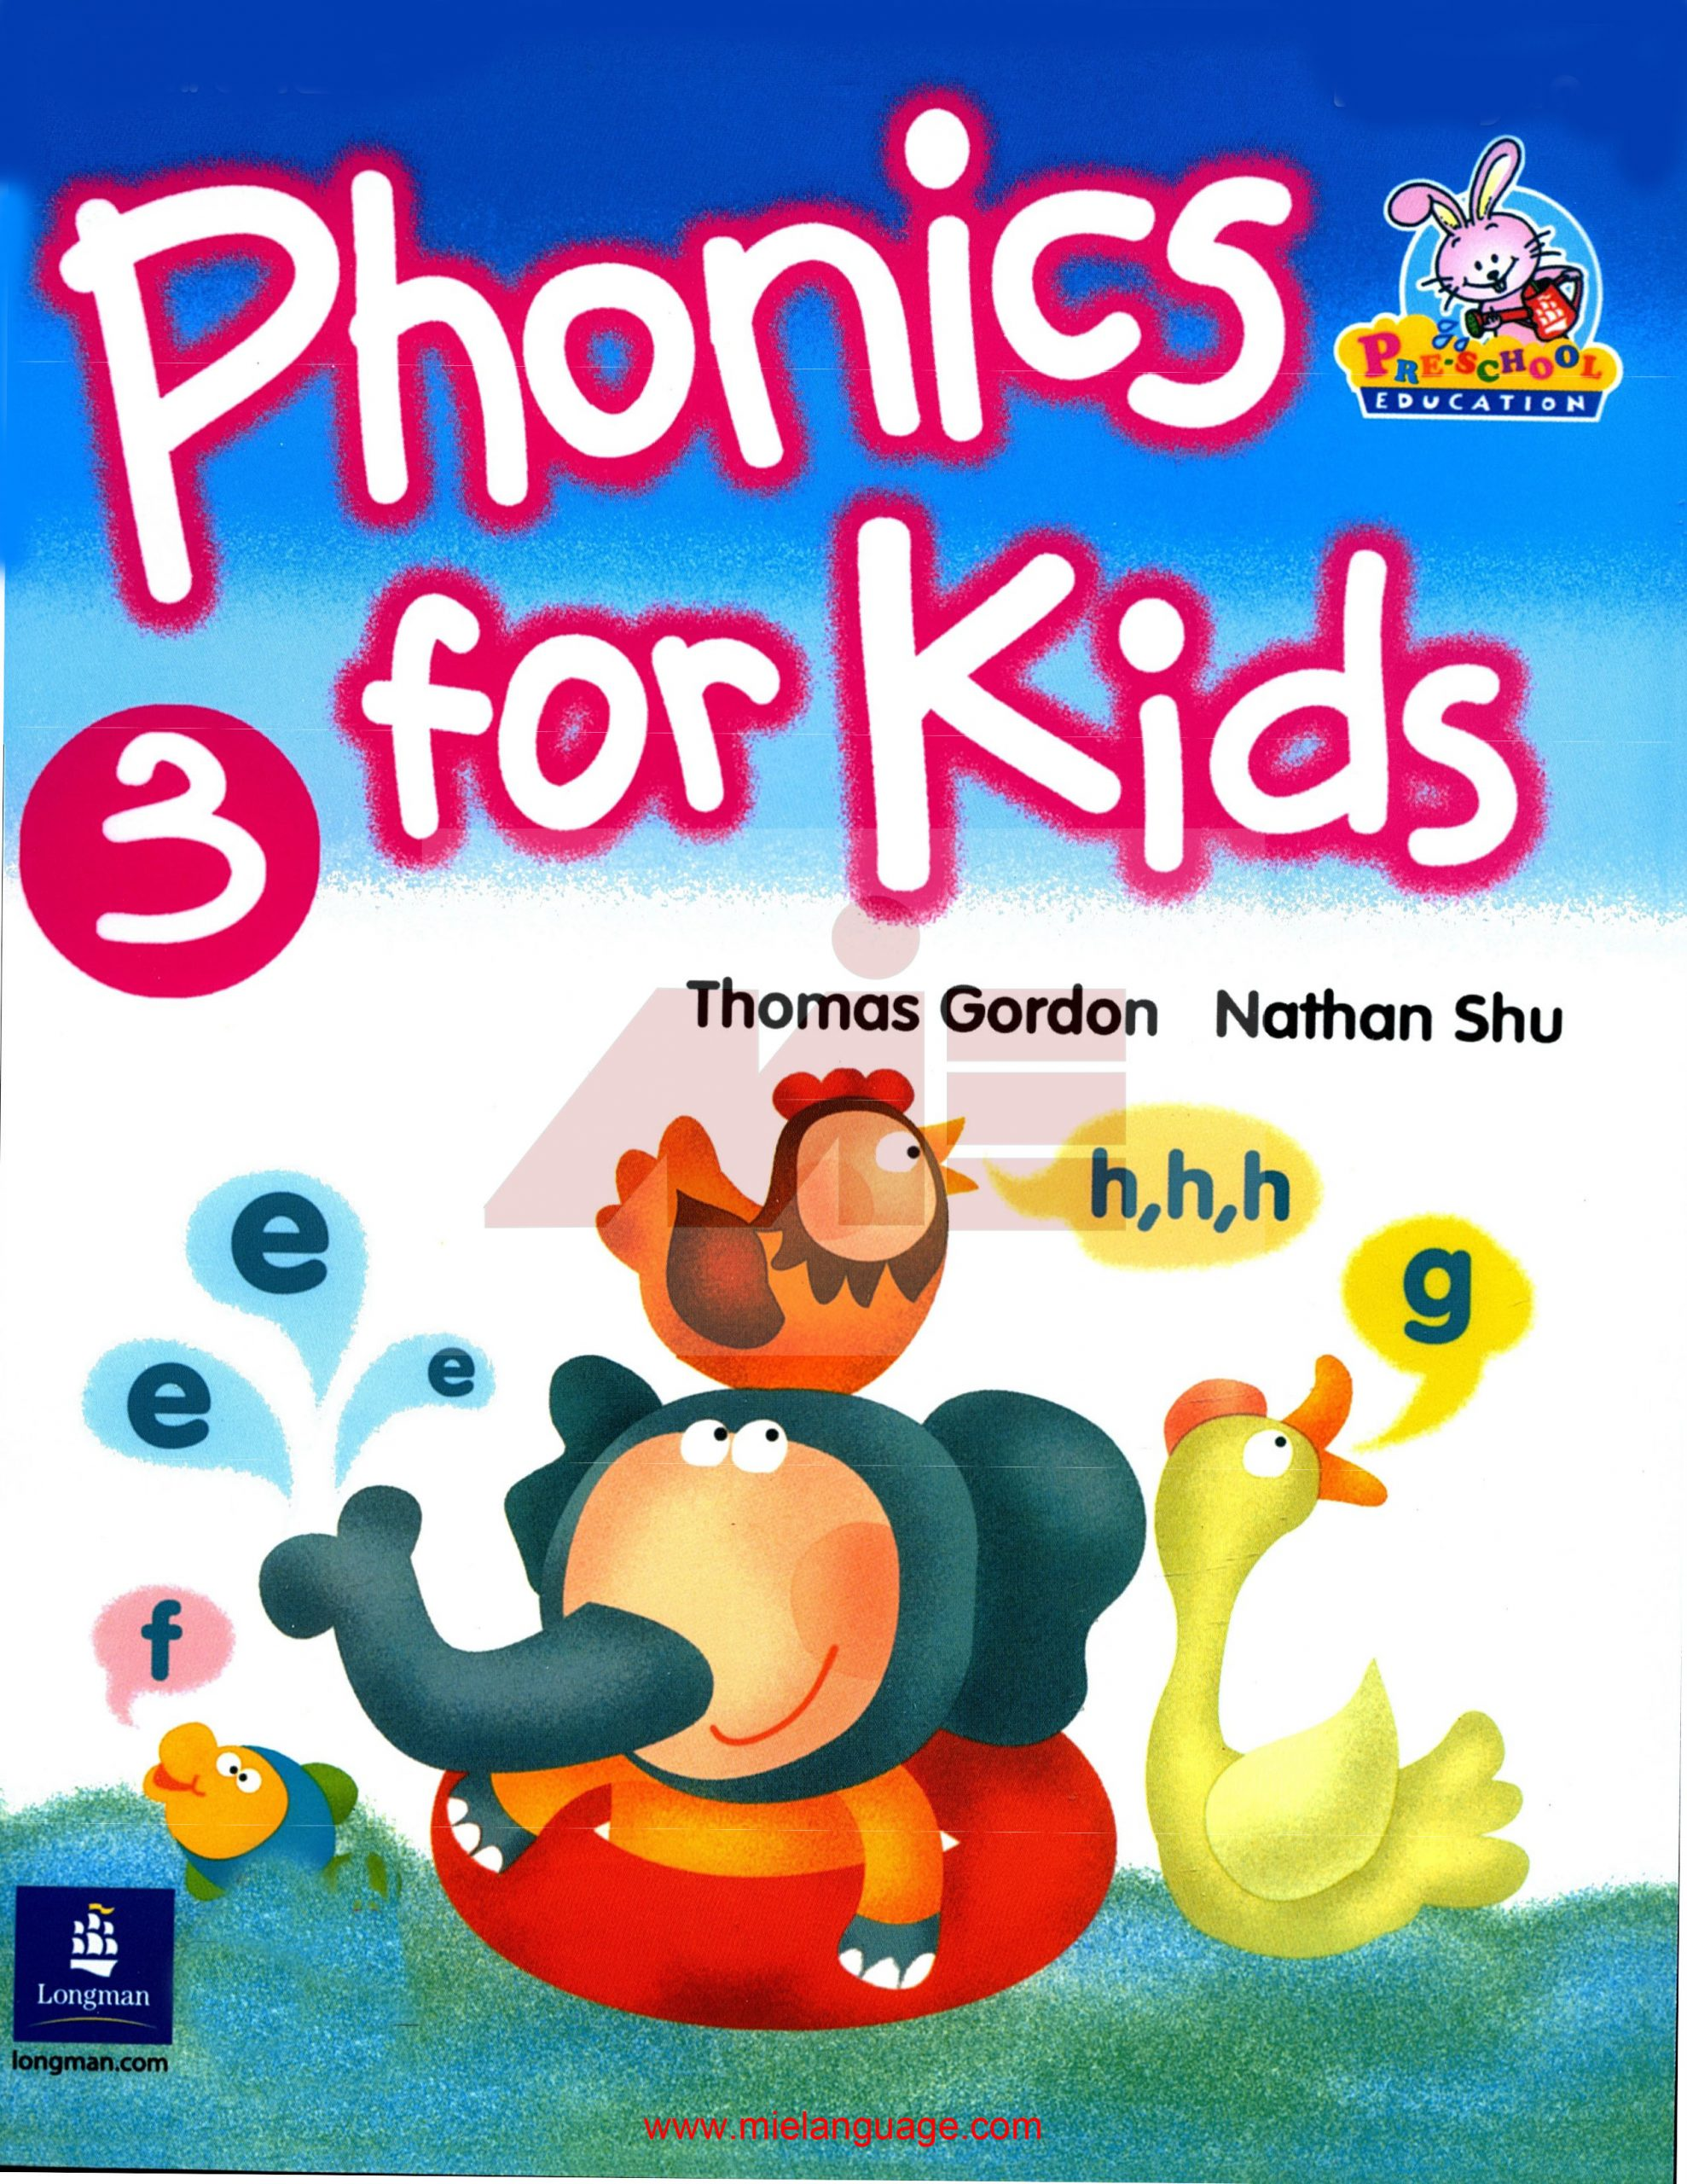 Phonics for Kids 3 Book 1 scaled